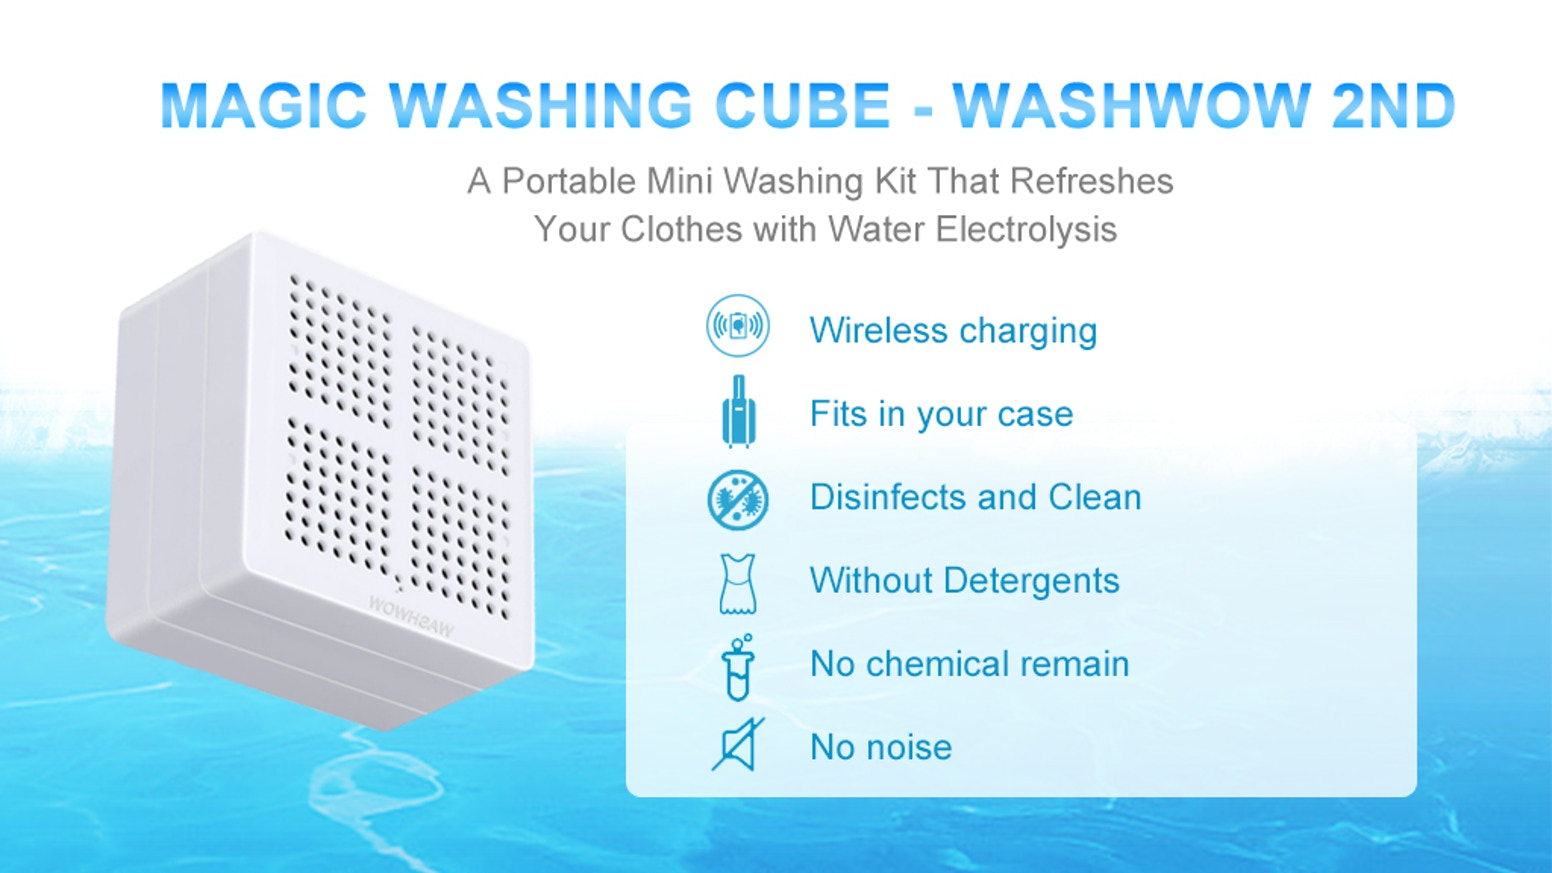 WASHWOW 2.0-A Portable Wash&Disinfect Cube Without Detergent is the top crowdfunding project launched today. WASHWOW 2.0-A Portable Wash&Disinfect Cube Without Detergent raised over $427142 from 325 backers. Other top projects include Pit Bull Flower Power: the book, The Planets: Earth Playing Cards [3 of 8], Poverty...